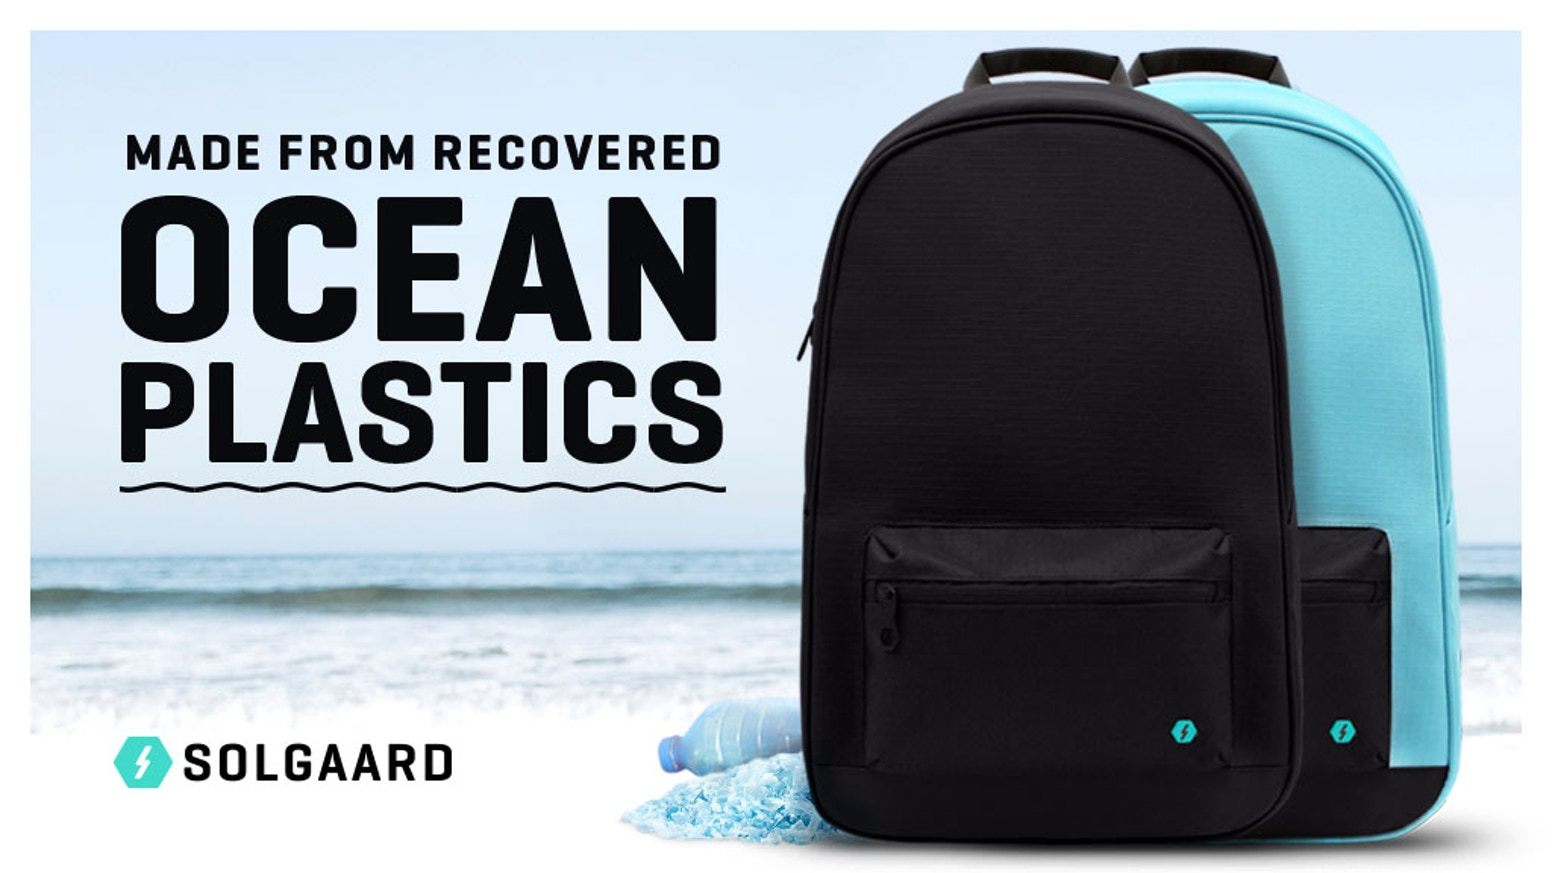 cf32516212 A backpack made from recycled plastic recovered from the ocean. Designed  for everyday carry